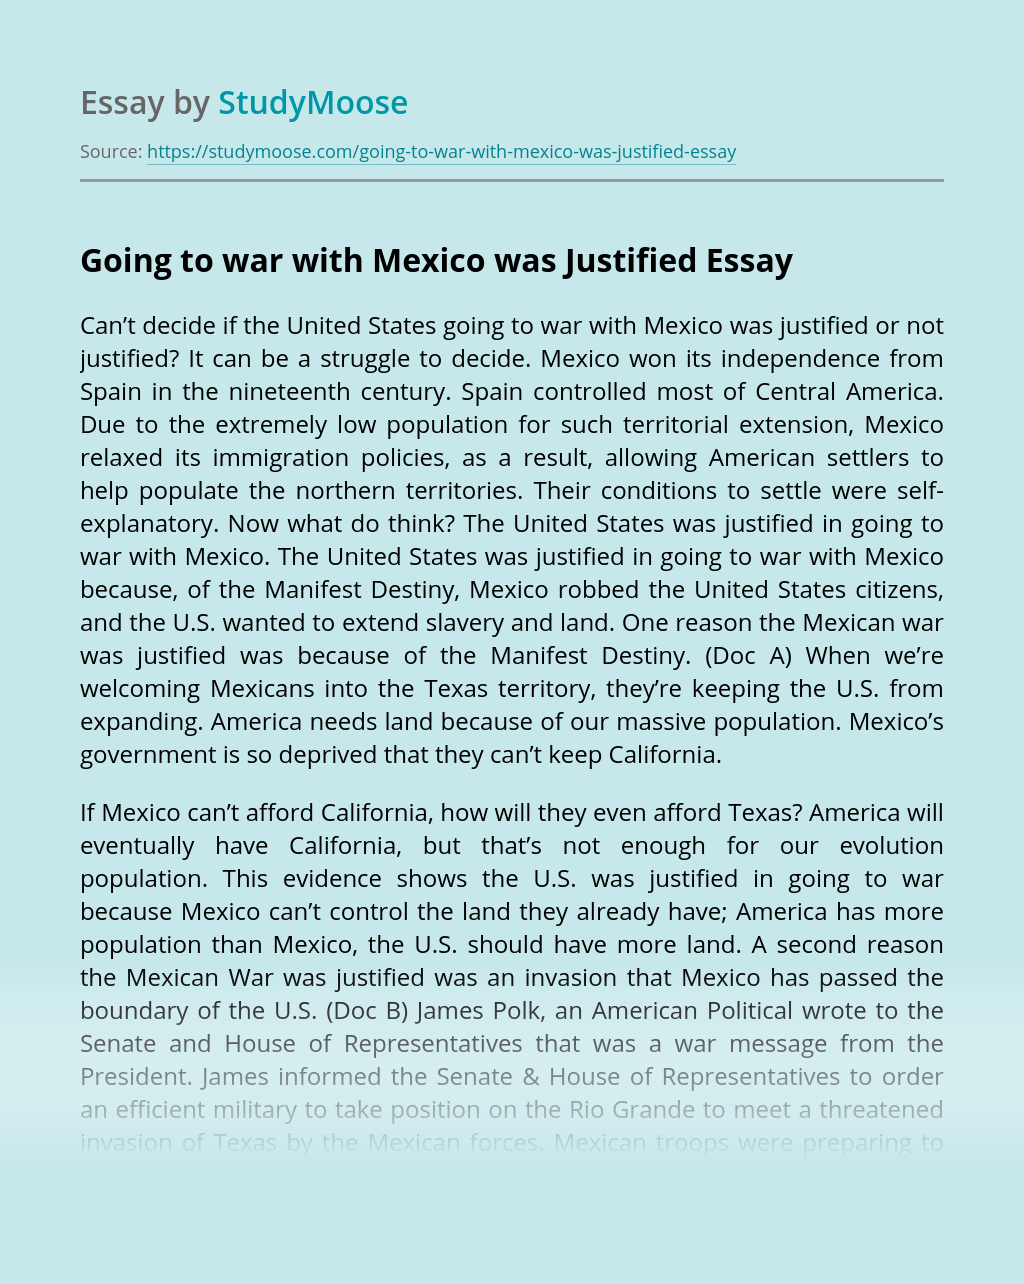 Going to war with Mexico was Justified